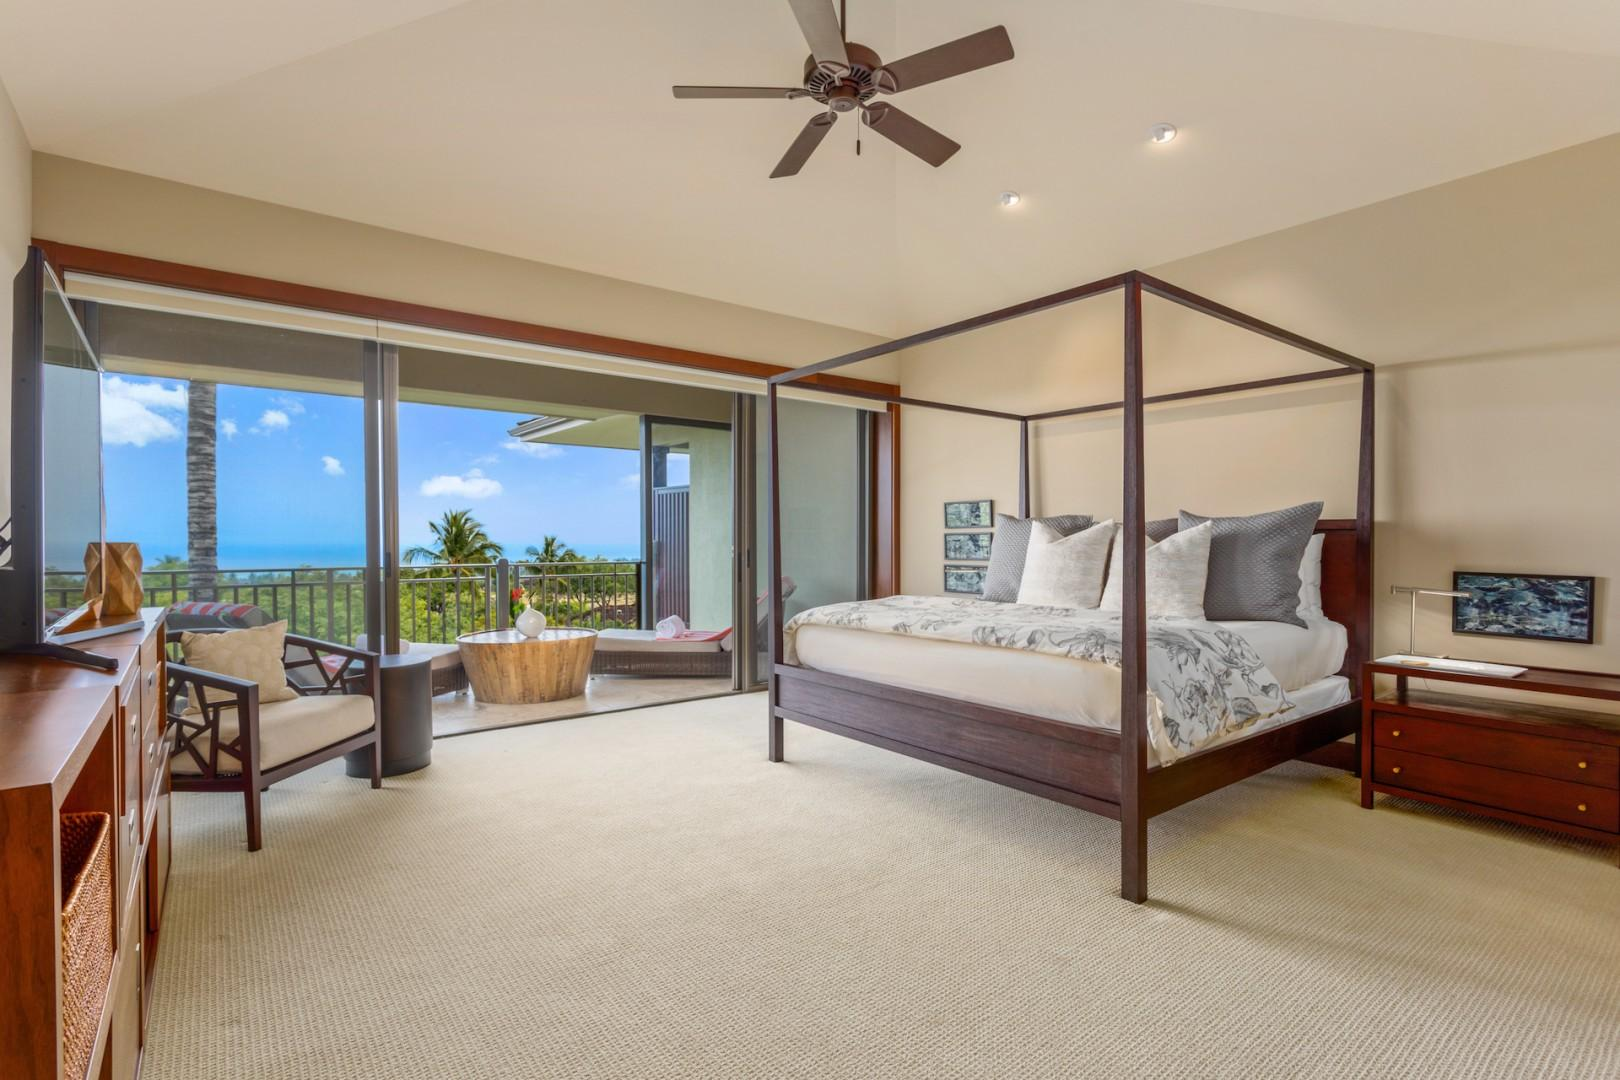 Master suite with private ocean-view deck, king-size bed, large flat-screen TV, and electric drop-down blinds.